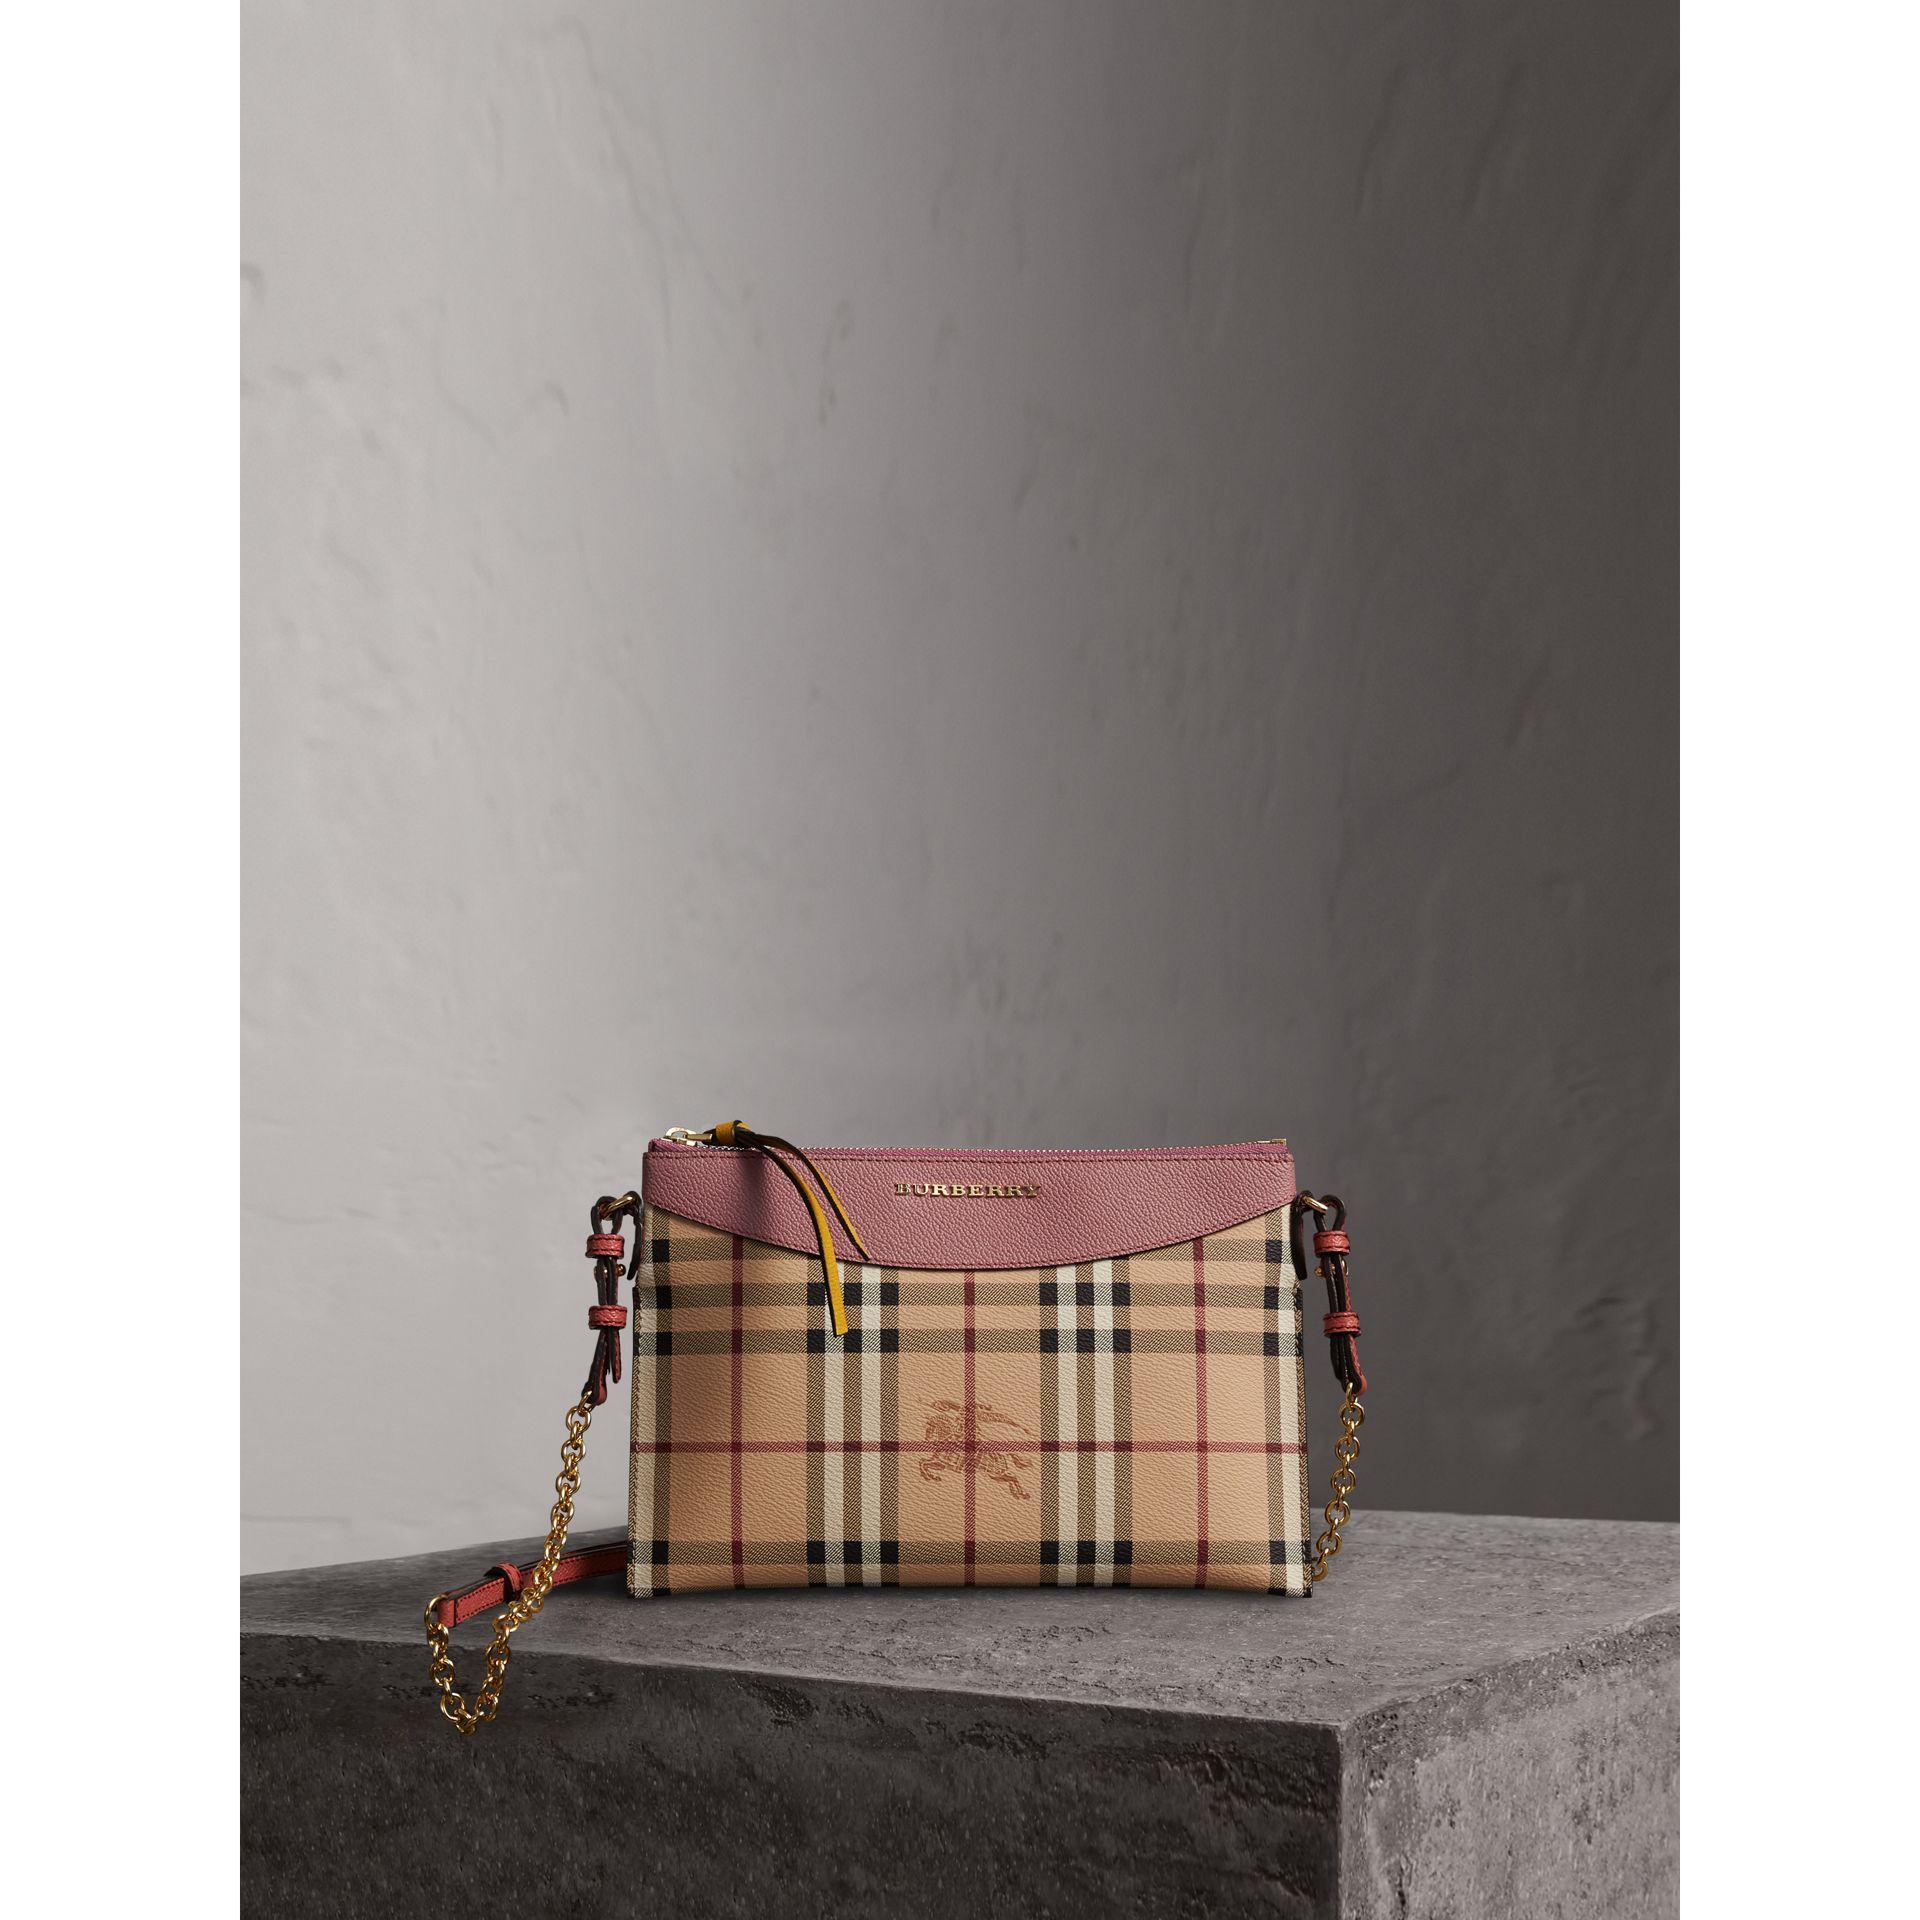 Haymarket Check and Two-tone Leather Clutch Bag in Dusty Pink/multicolour - Women | Burberry - gallery image 8